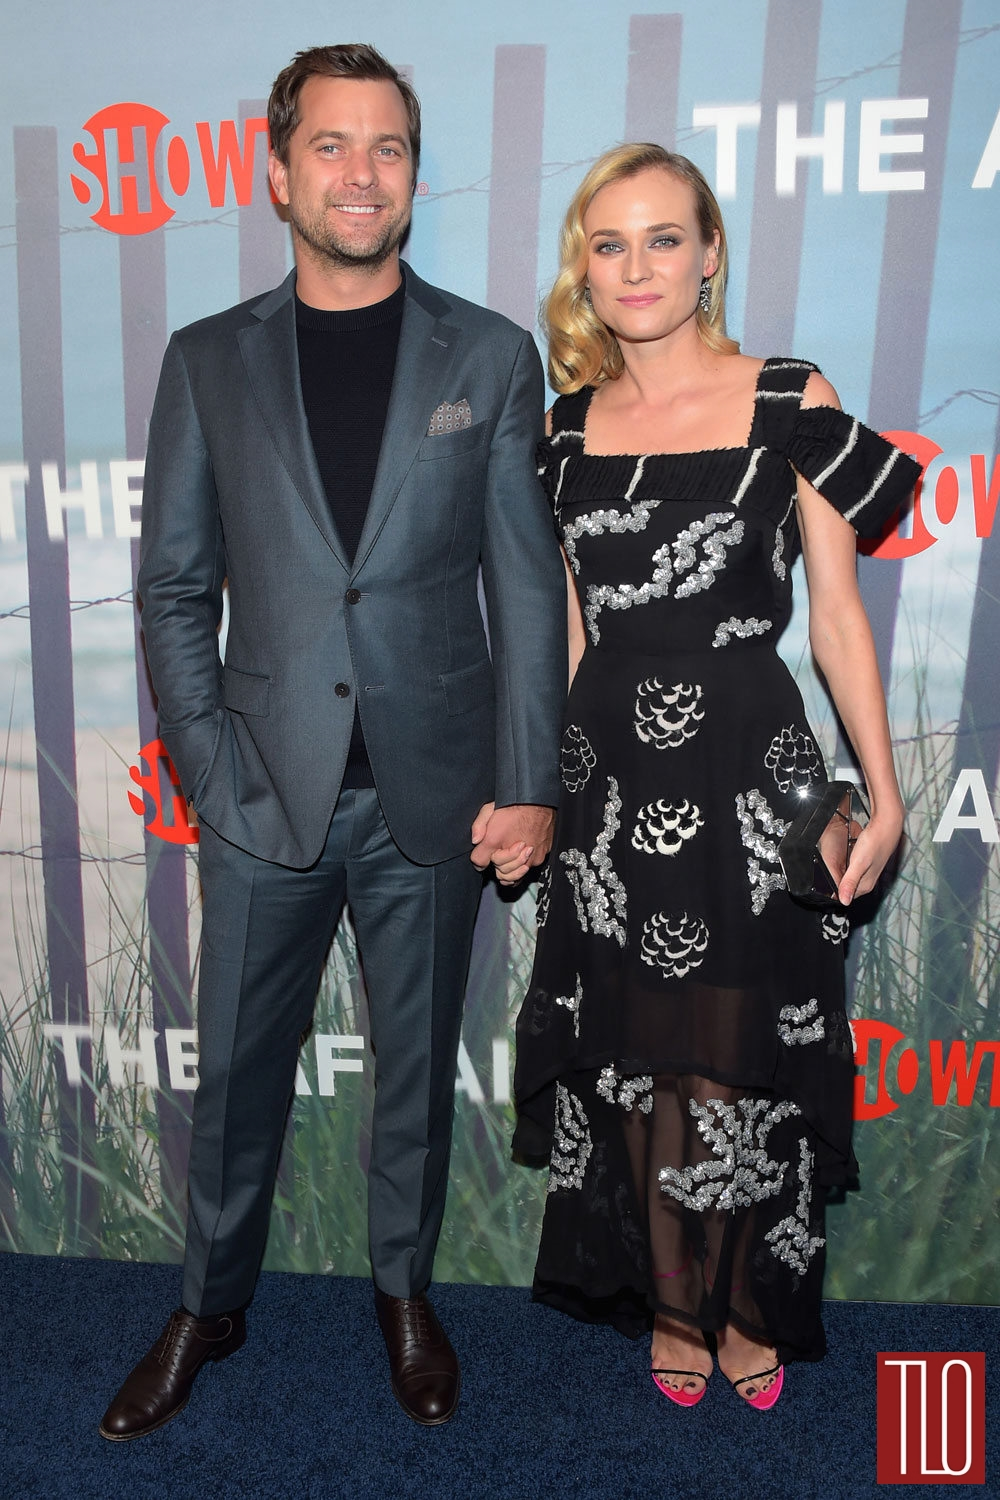 Joshua-Jackson-Diane-Kruger-The-Affair-TV-Series-Premiere-Red-Carpet-Michael-Van-Der-Ham-Ermenegildo-Zegna-Fashion-Tom-Lorenzo-Site-TLO (1)